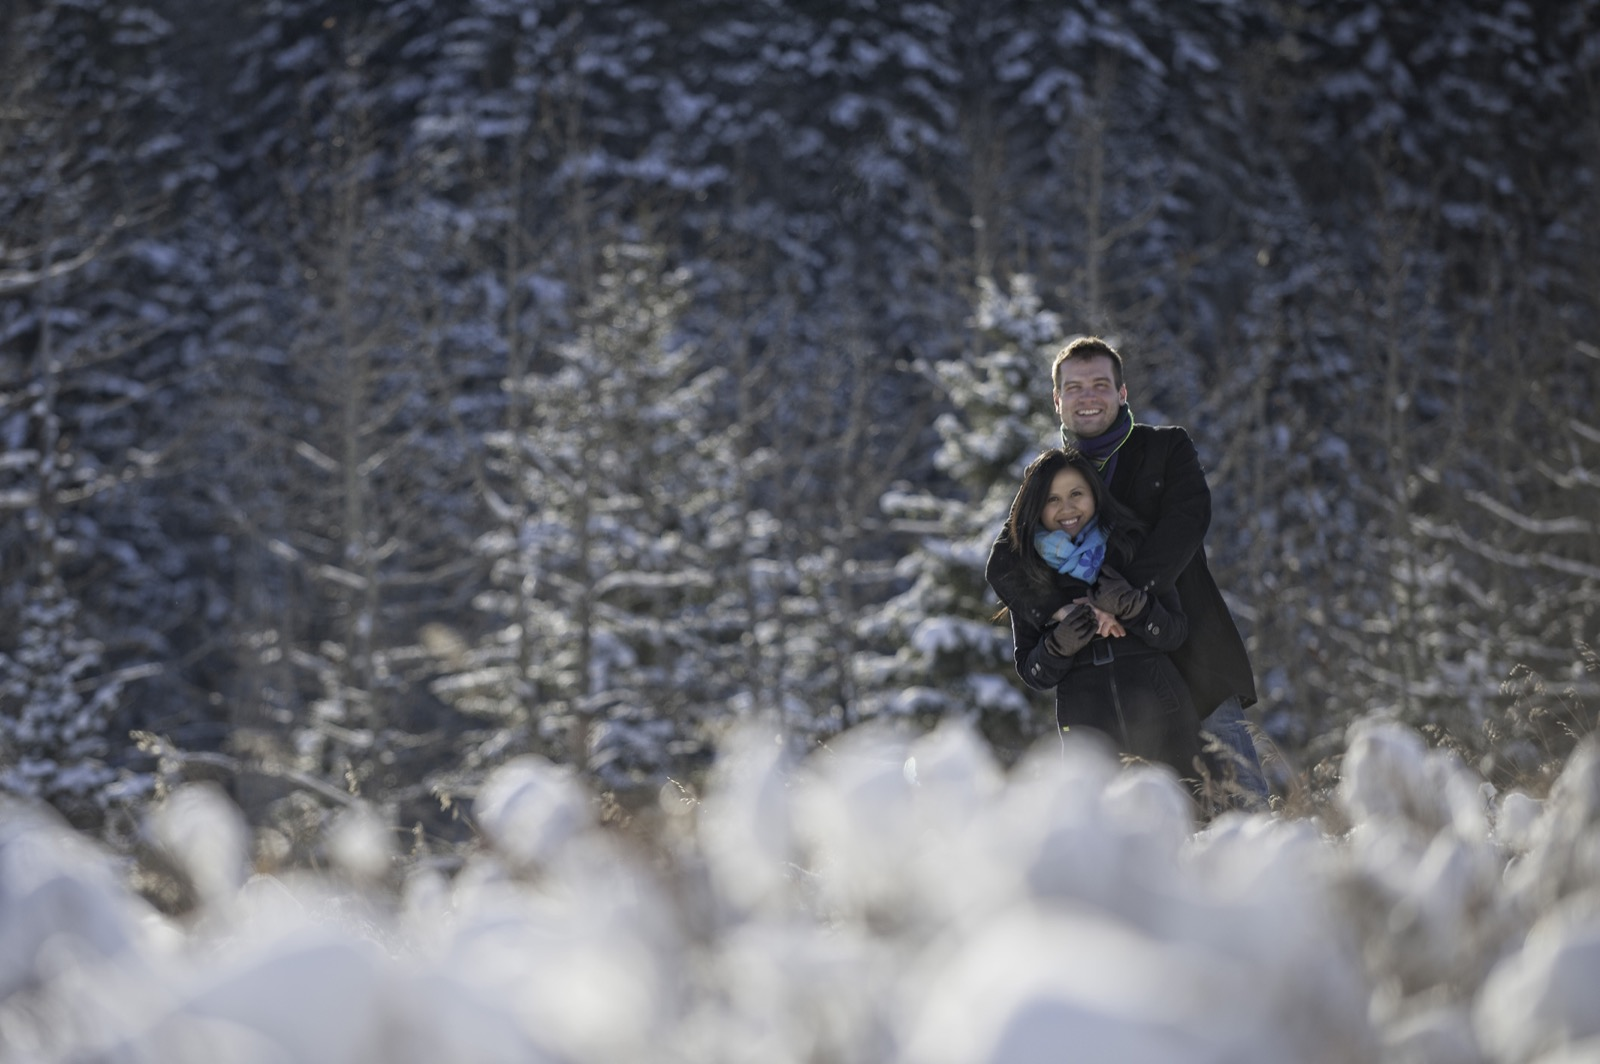 victoria-wedding-photographers-calgary-winter-engagement-proposal-08.jpg